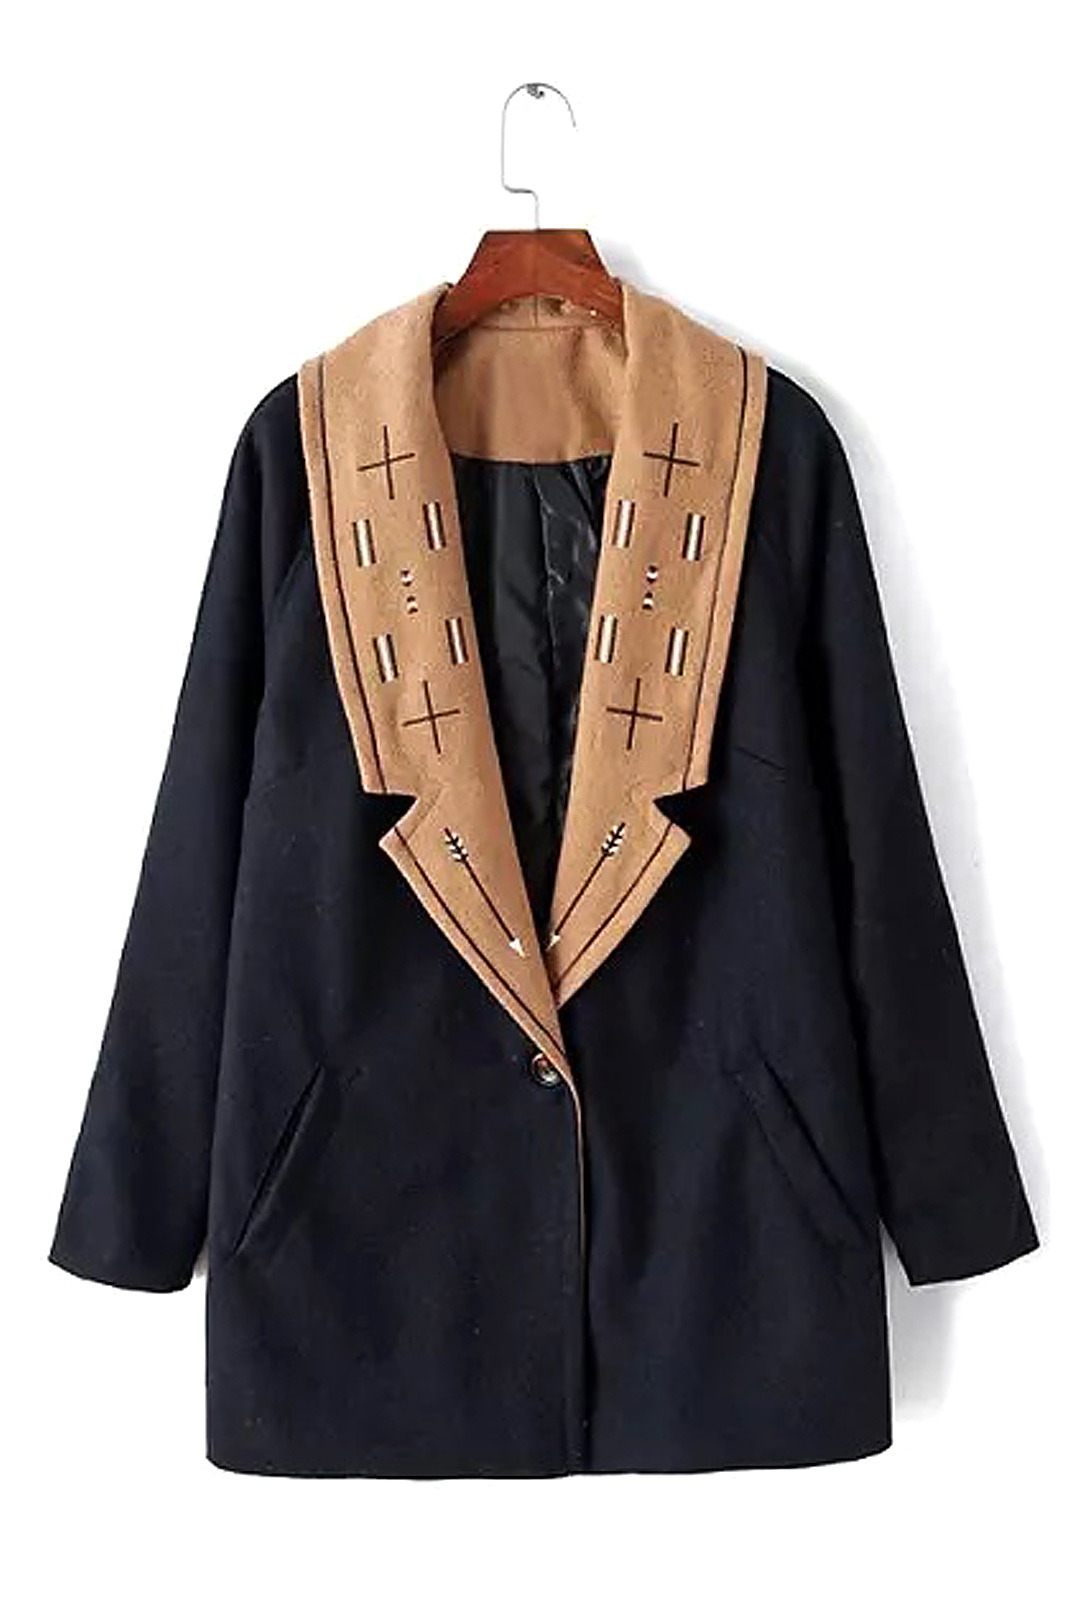 Navy Duster Coat with Embroidery grey lapel collar duster coat with side pockets